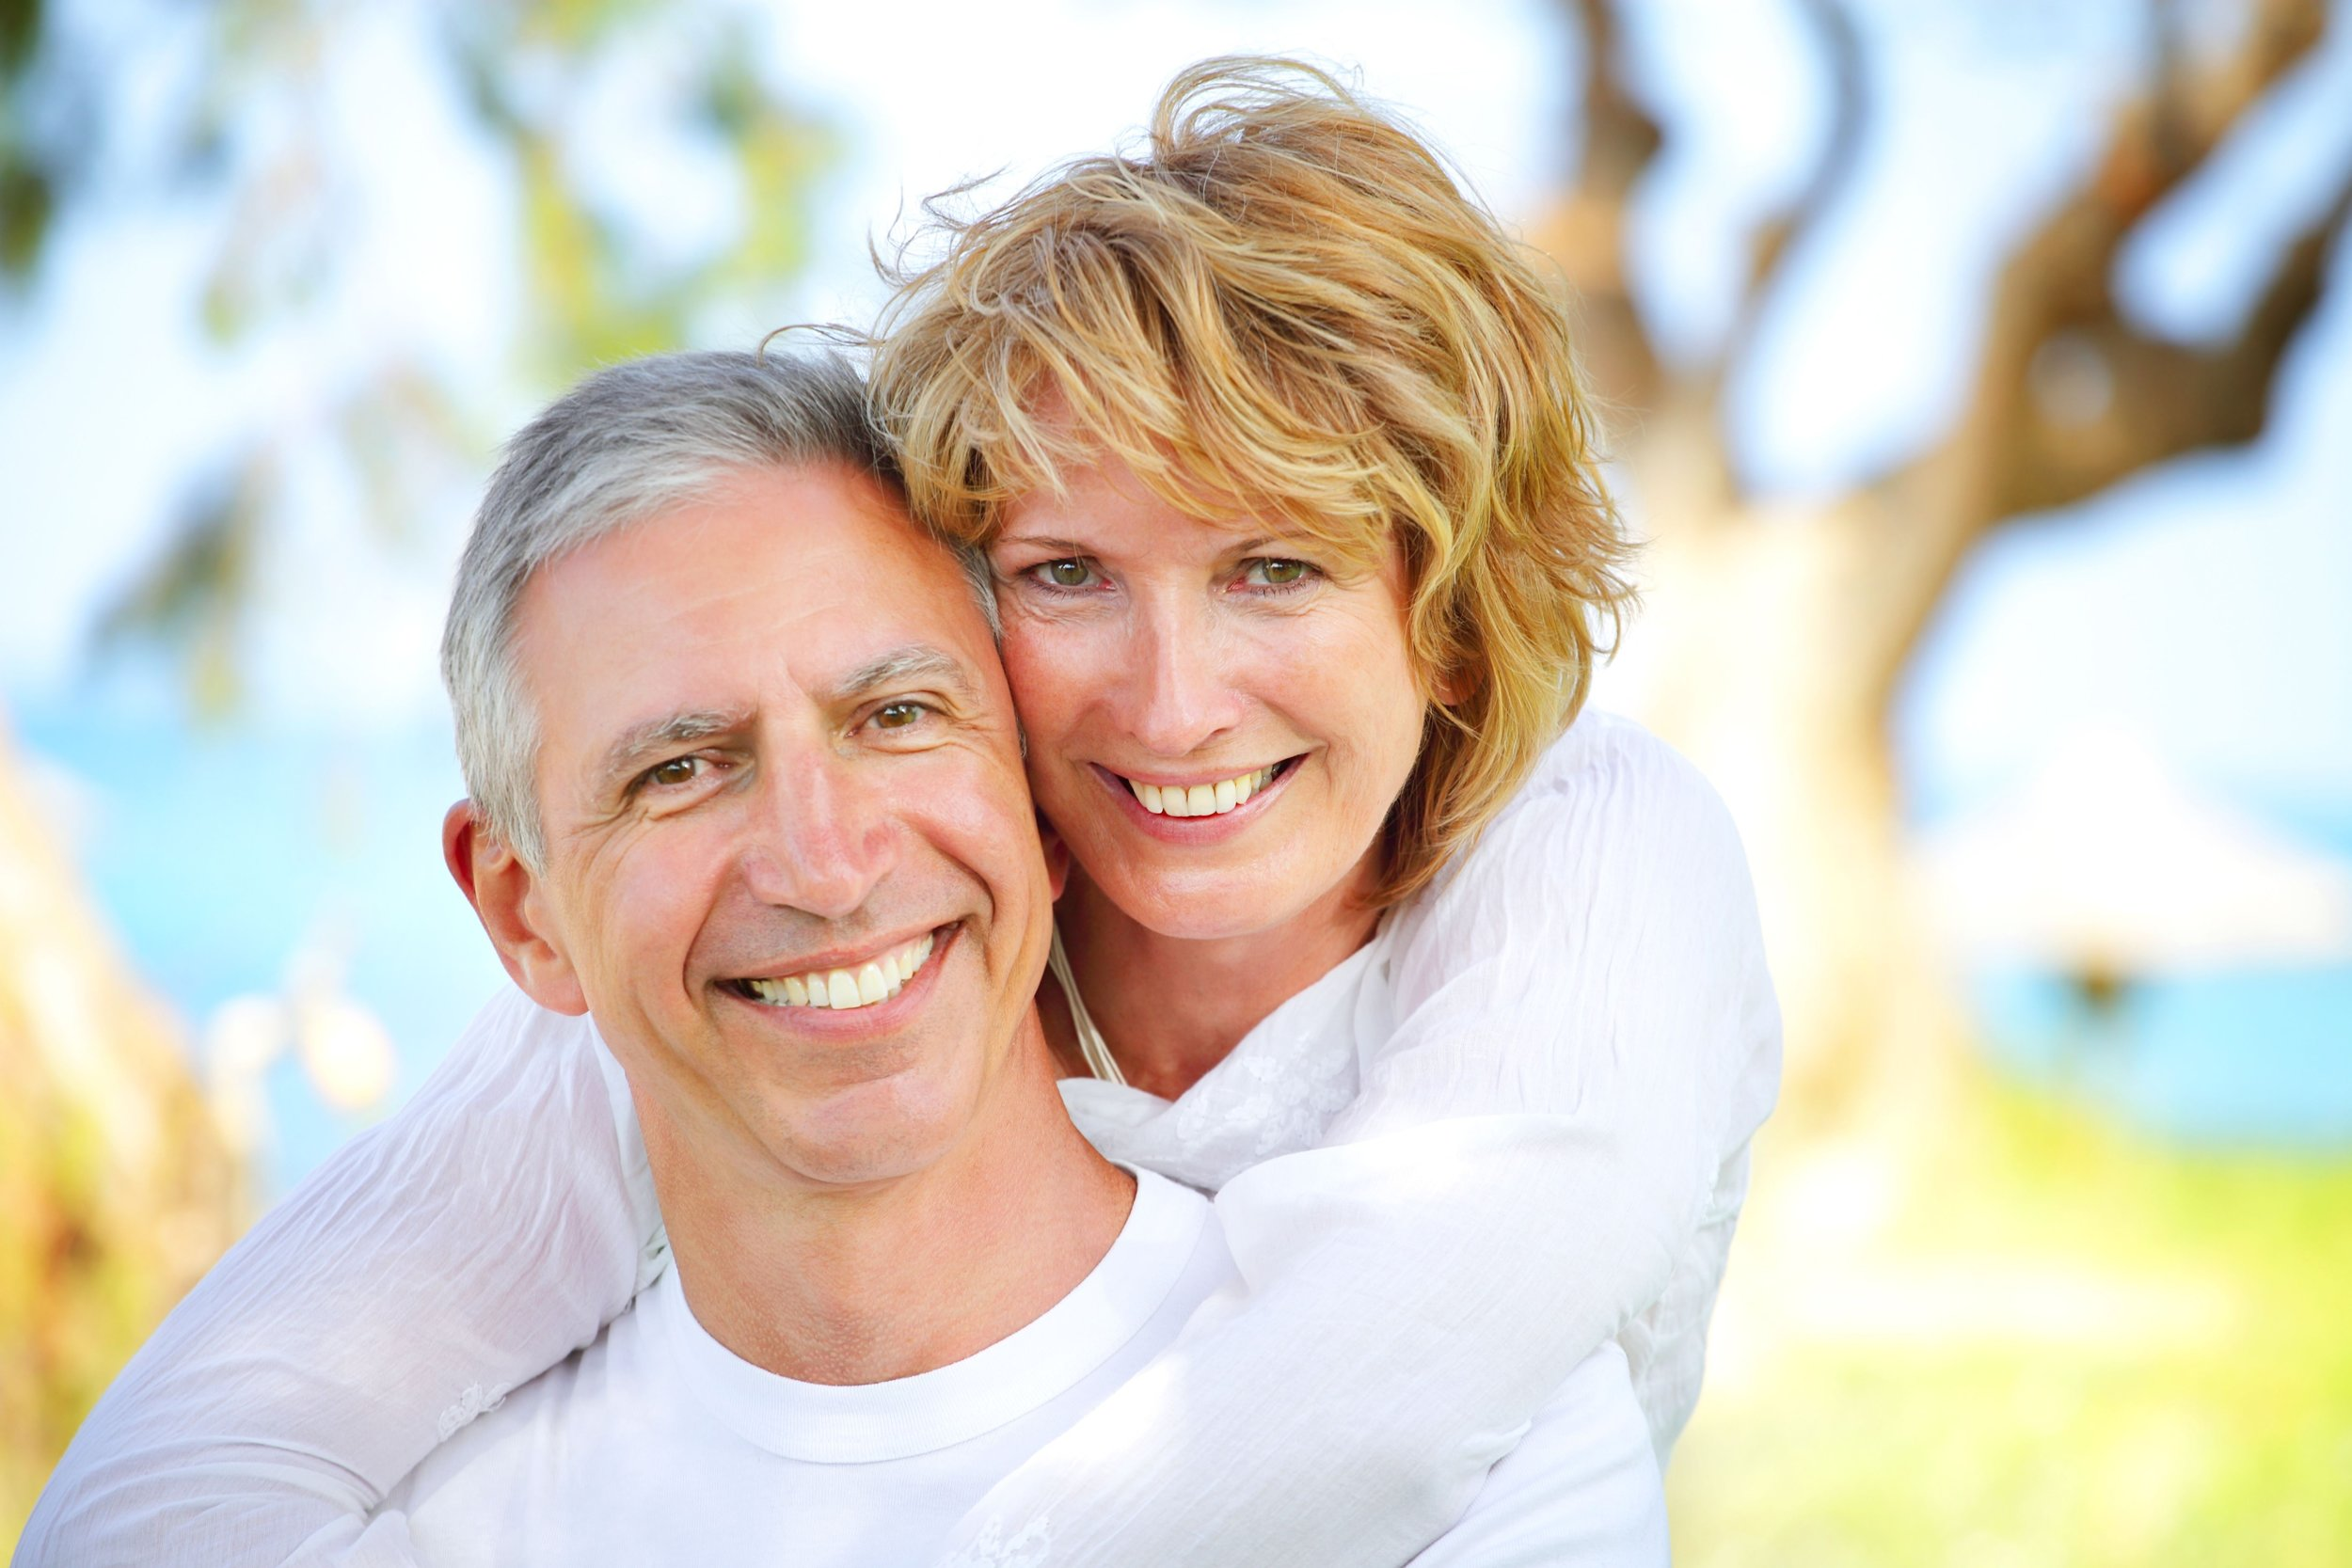 Dr. Fanning provides many services, including tooth replacement.